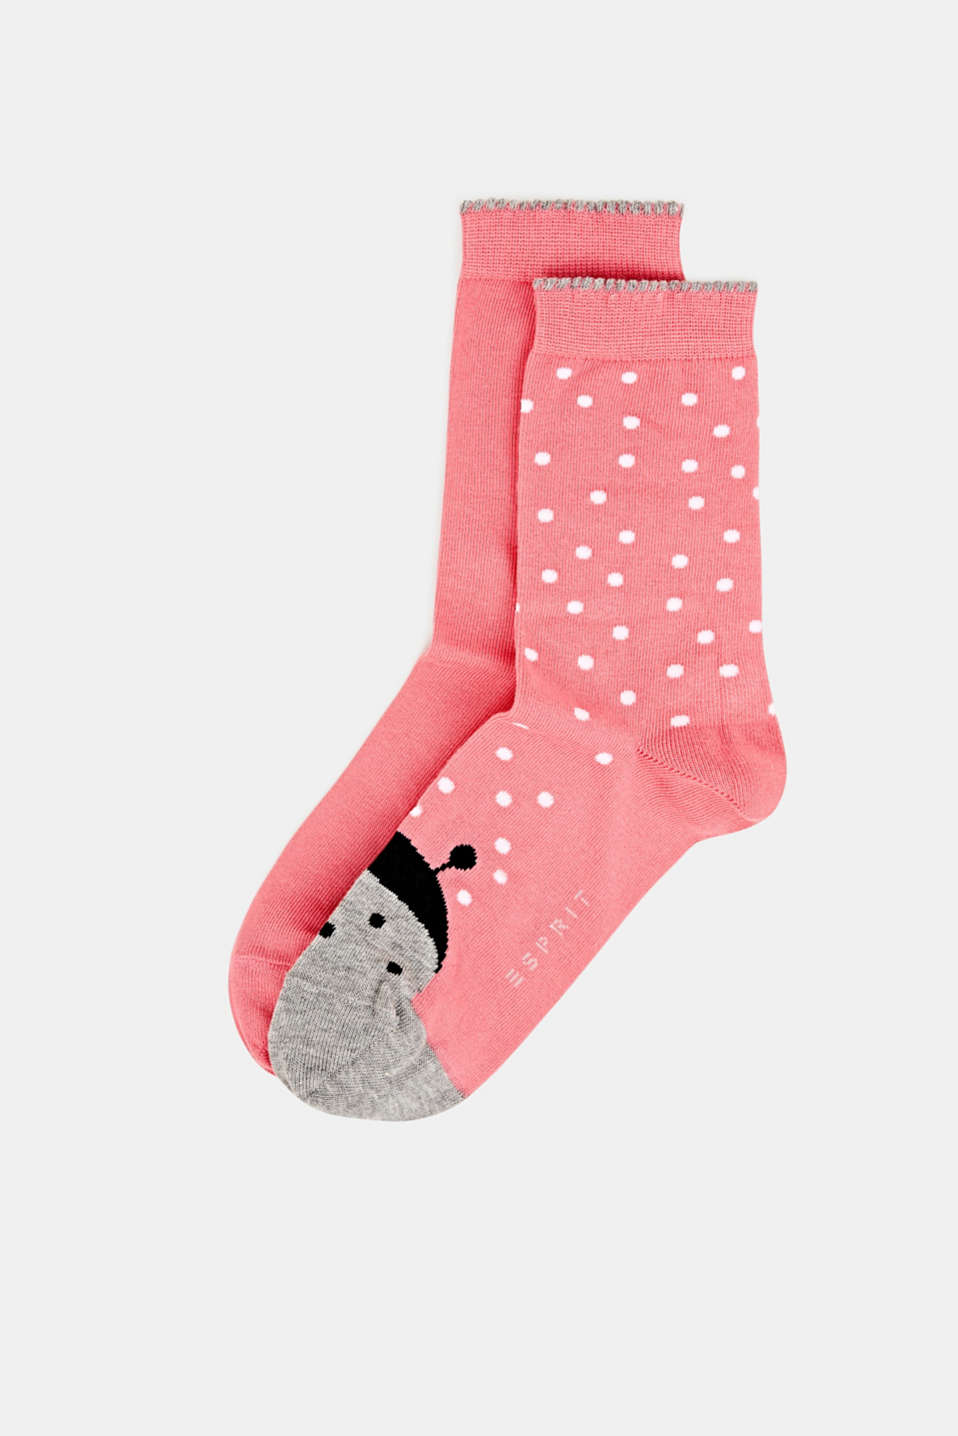 Esprit - Double pack of socks, plain and with a ladybird motif